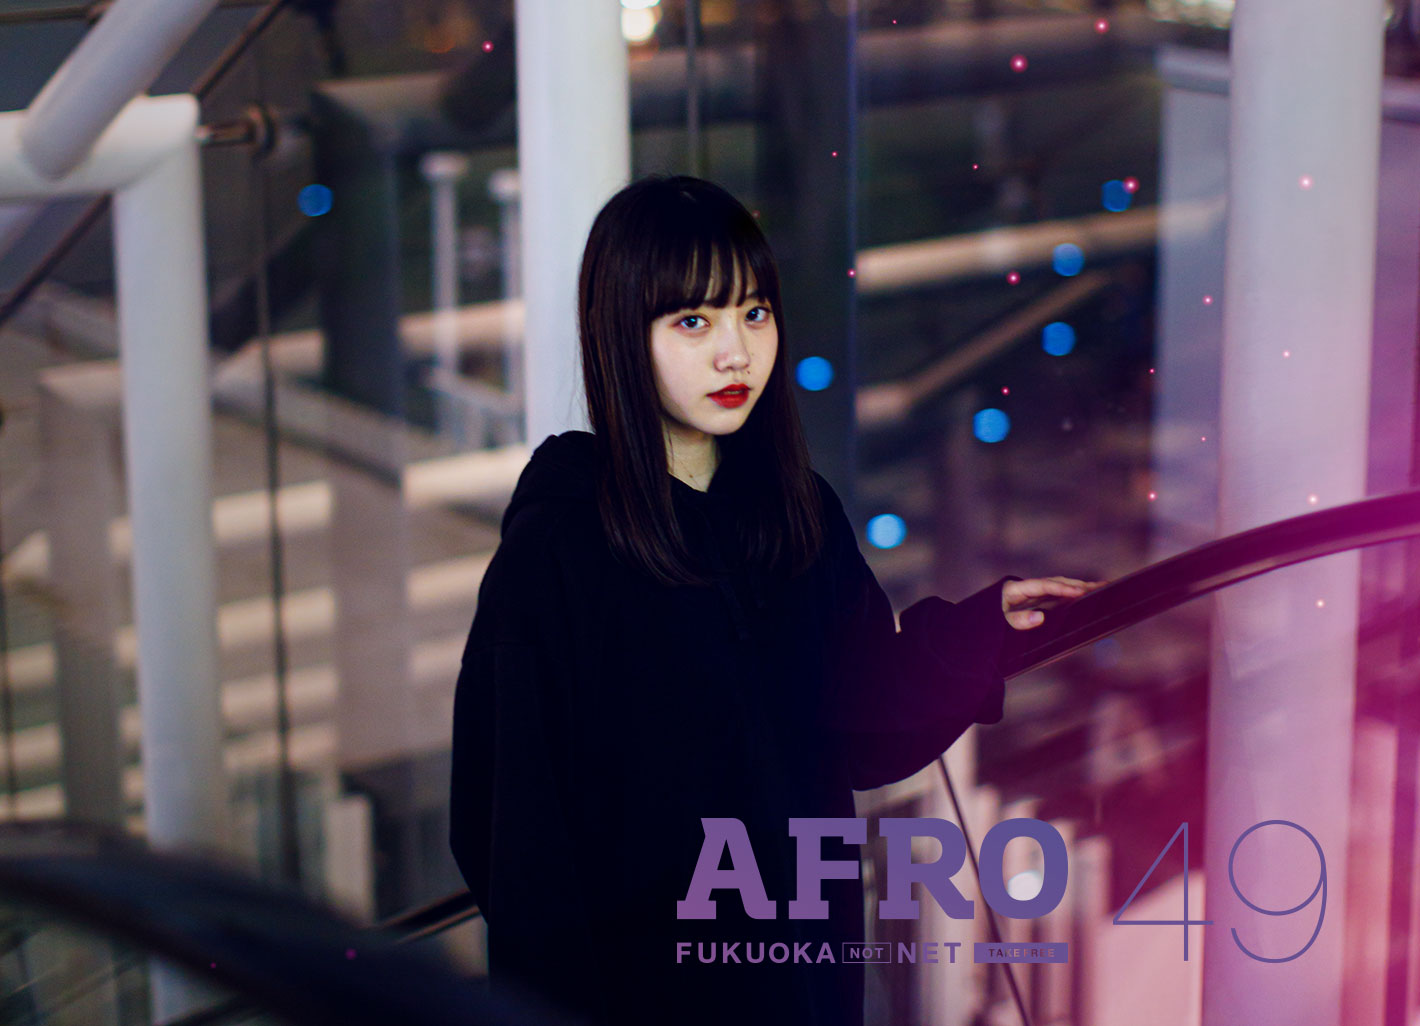 AFRO FUKUOKA [NOT] NET vol49